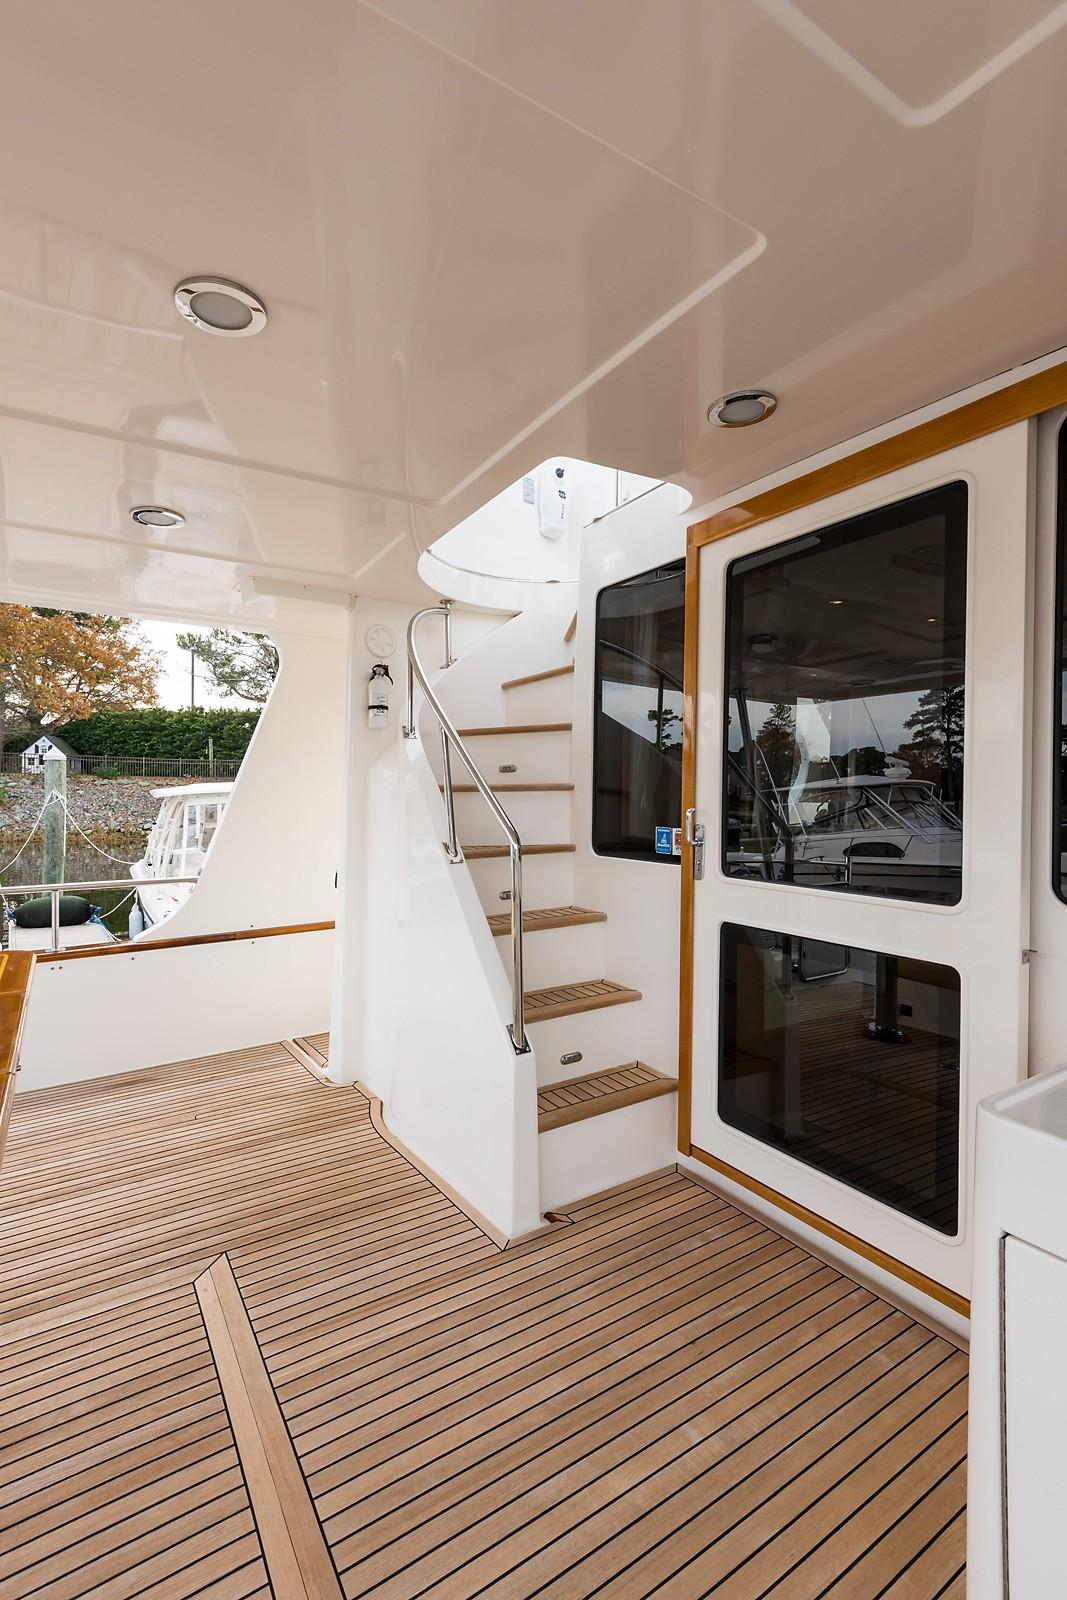 59 Grand Banks Aft Deck Stairs to FB